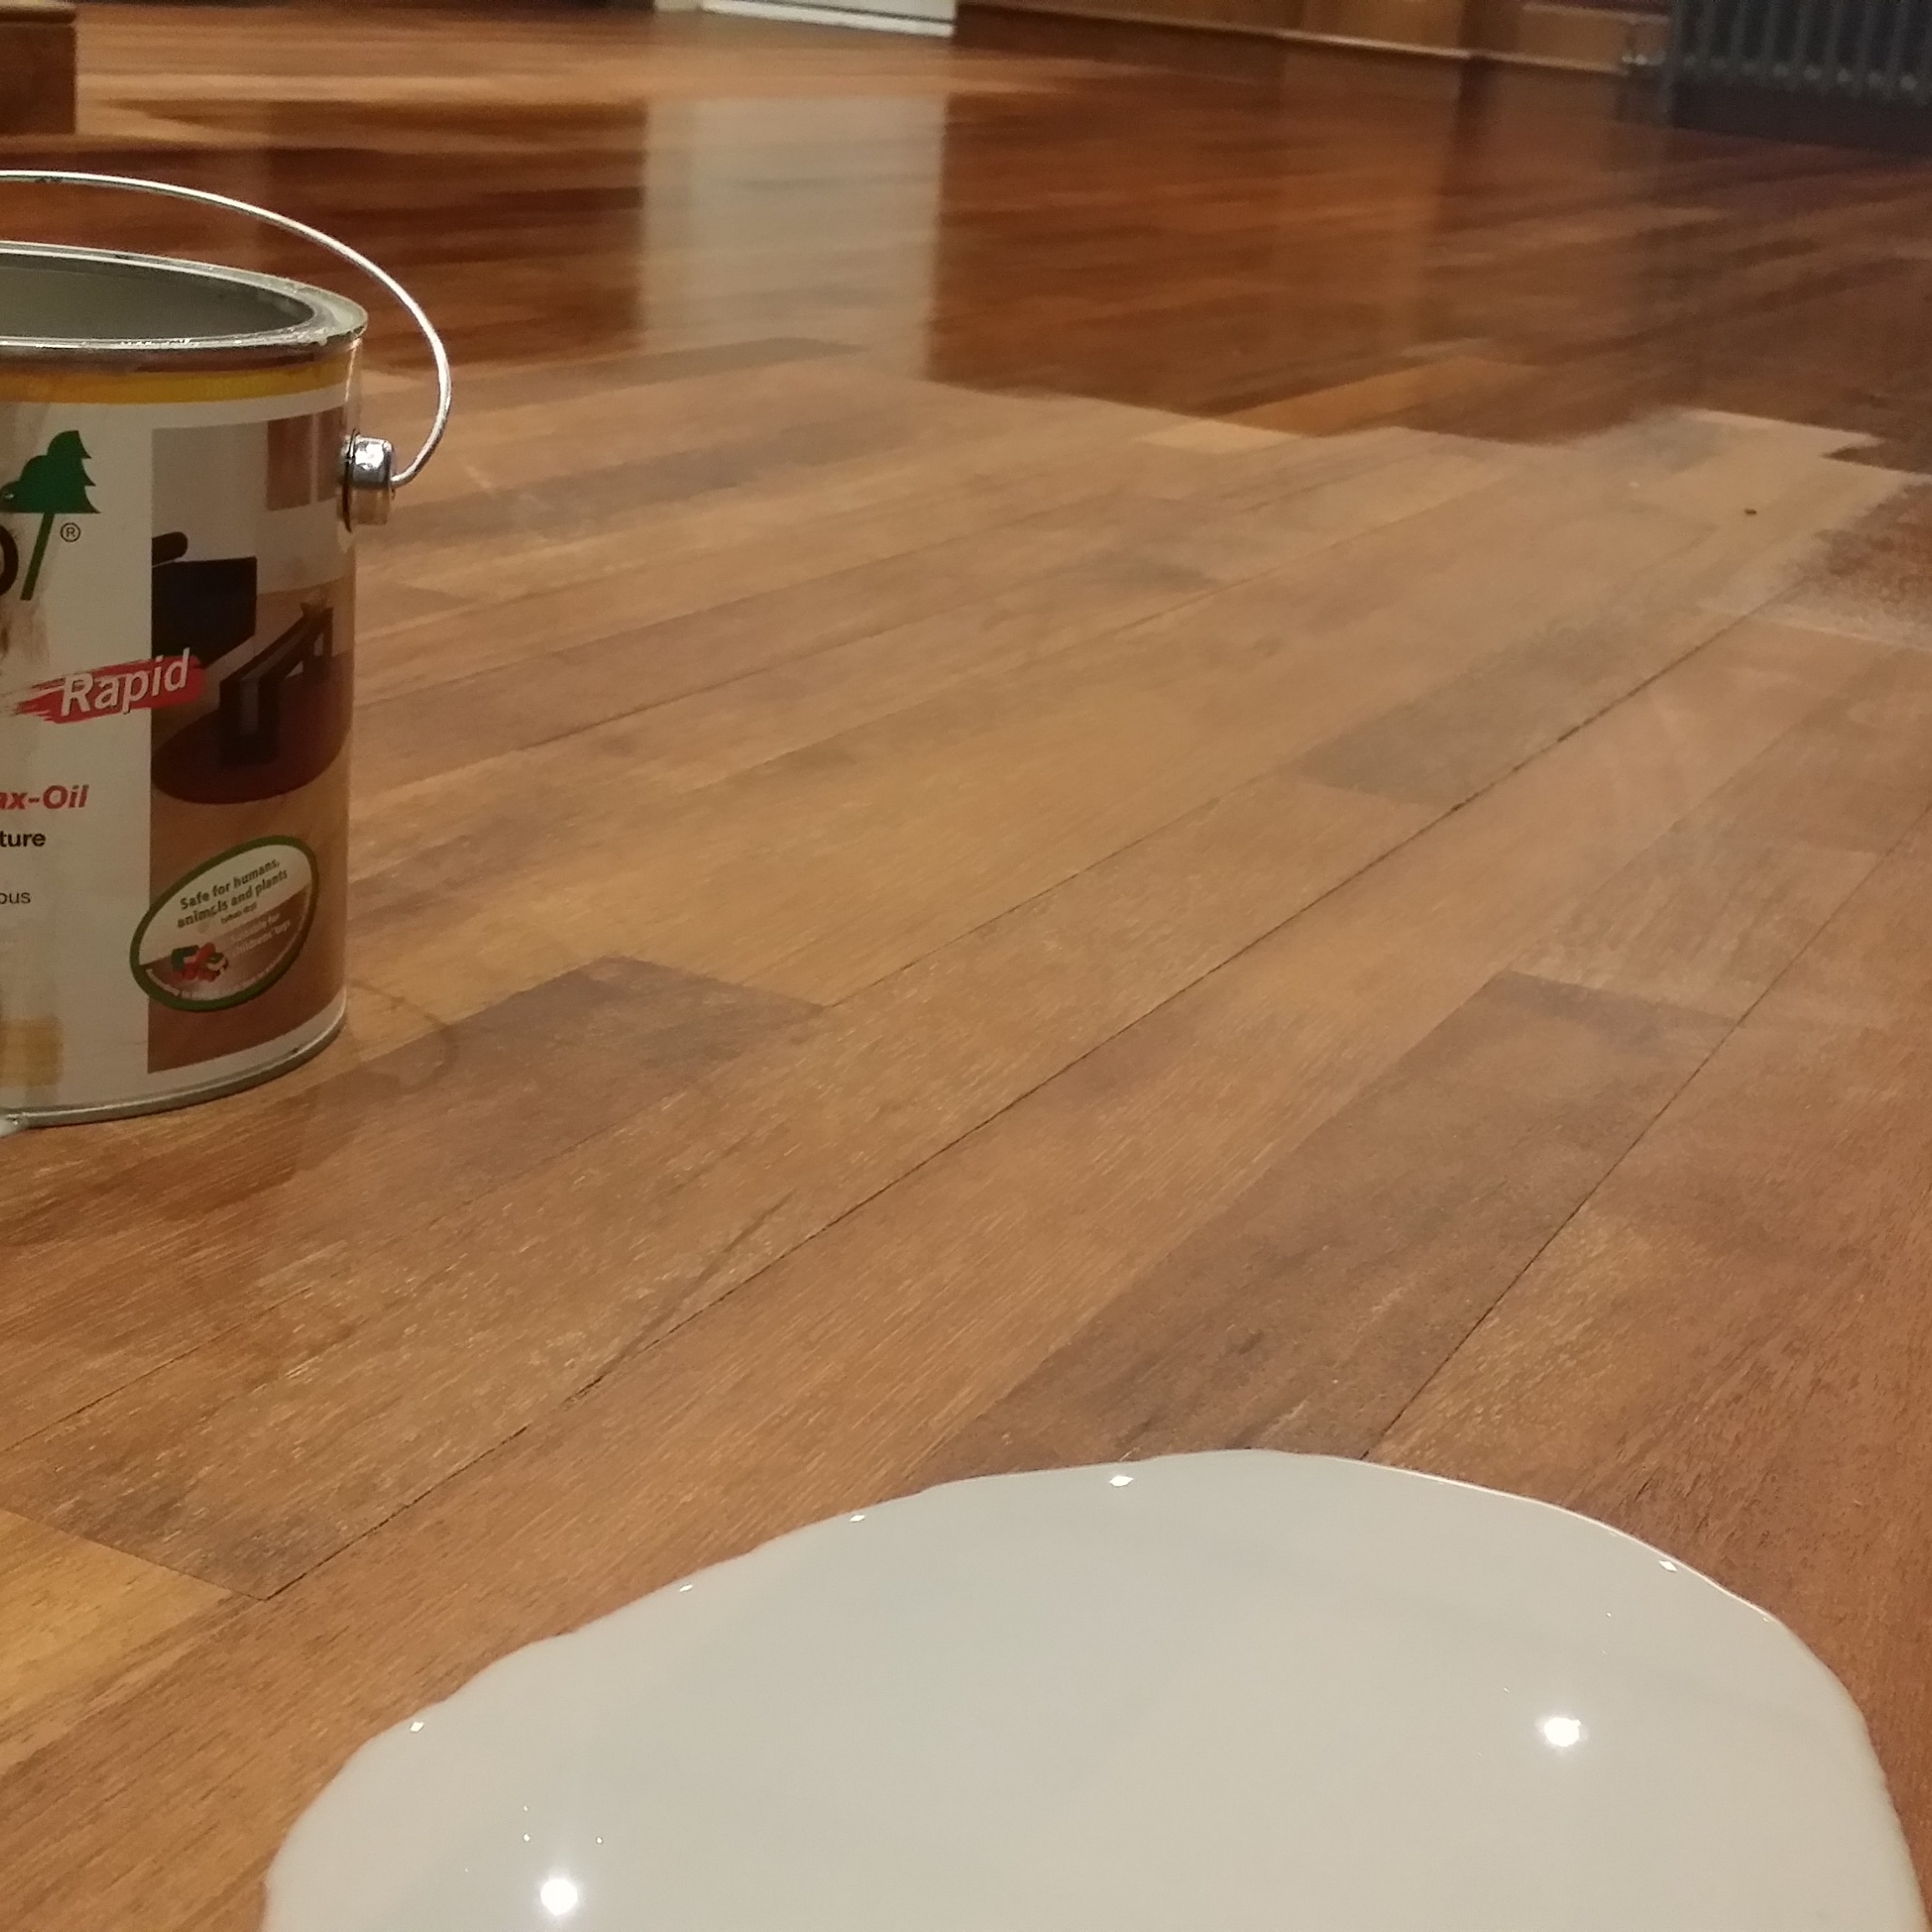 Essex Floor sanding and refinishing